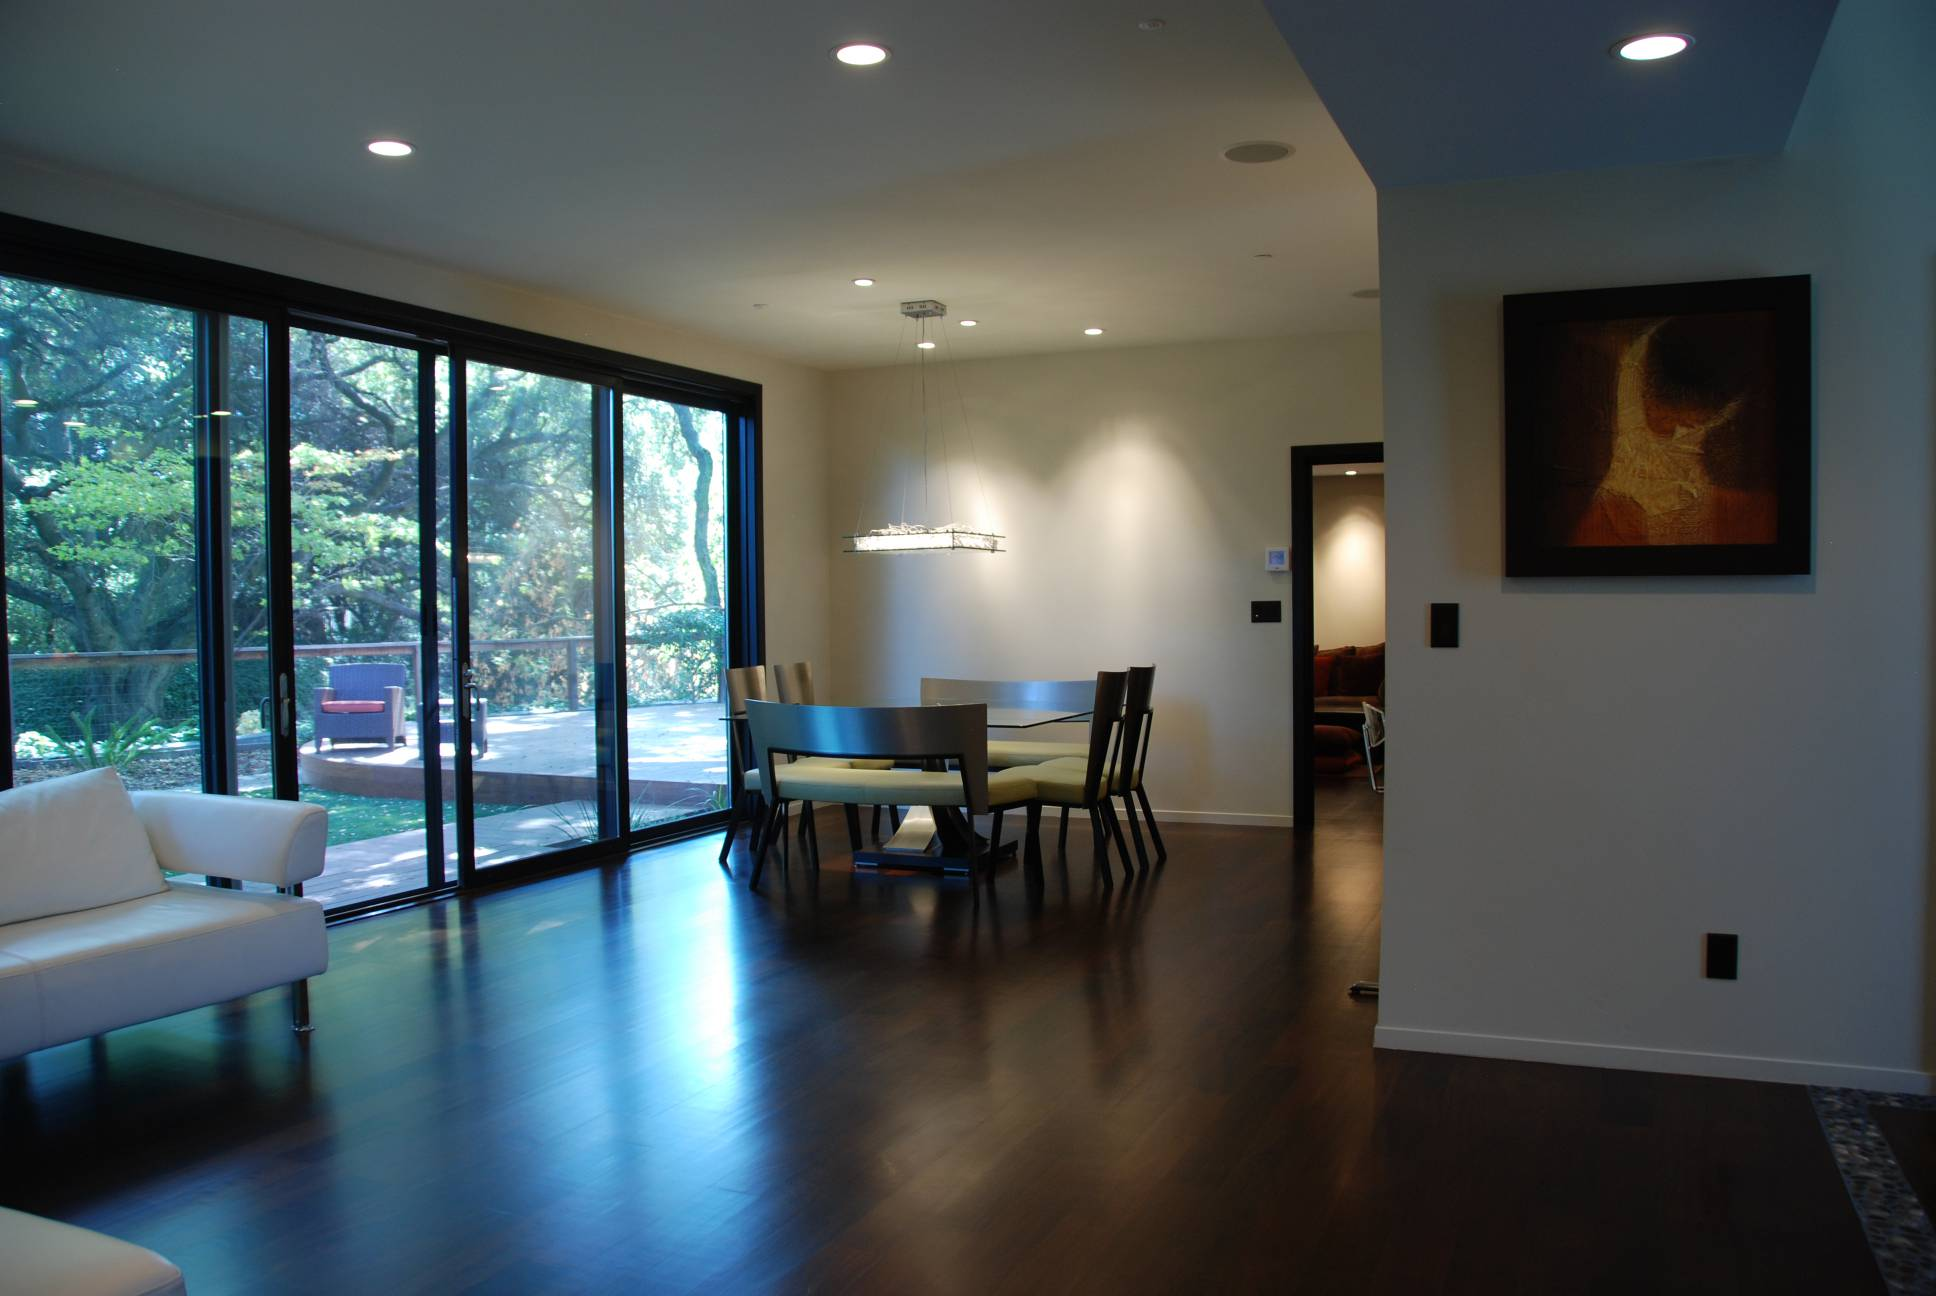 ground-floor-living-area-private-dining, best interior work, architect design, Los Altos